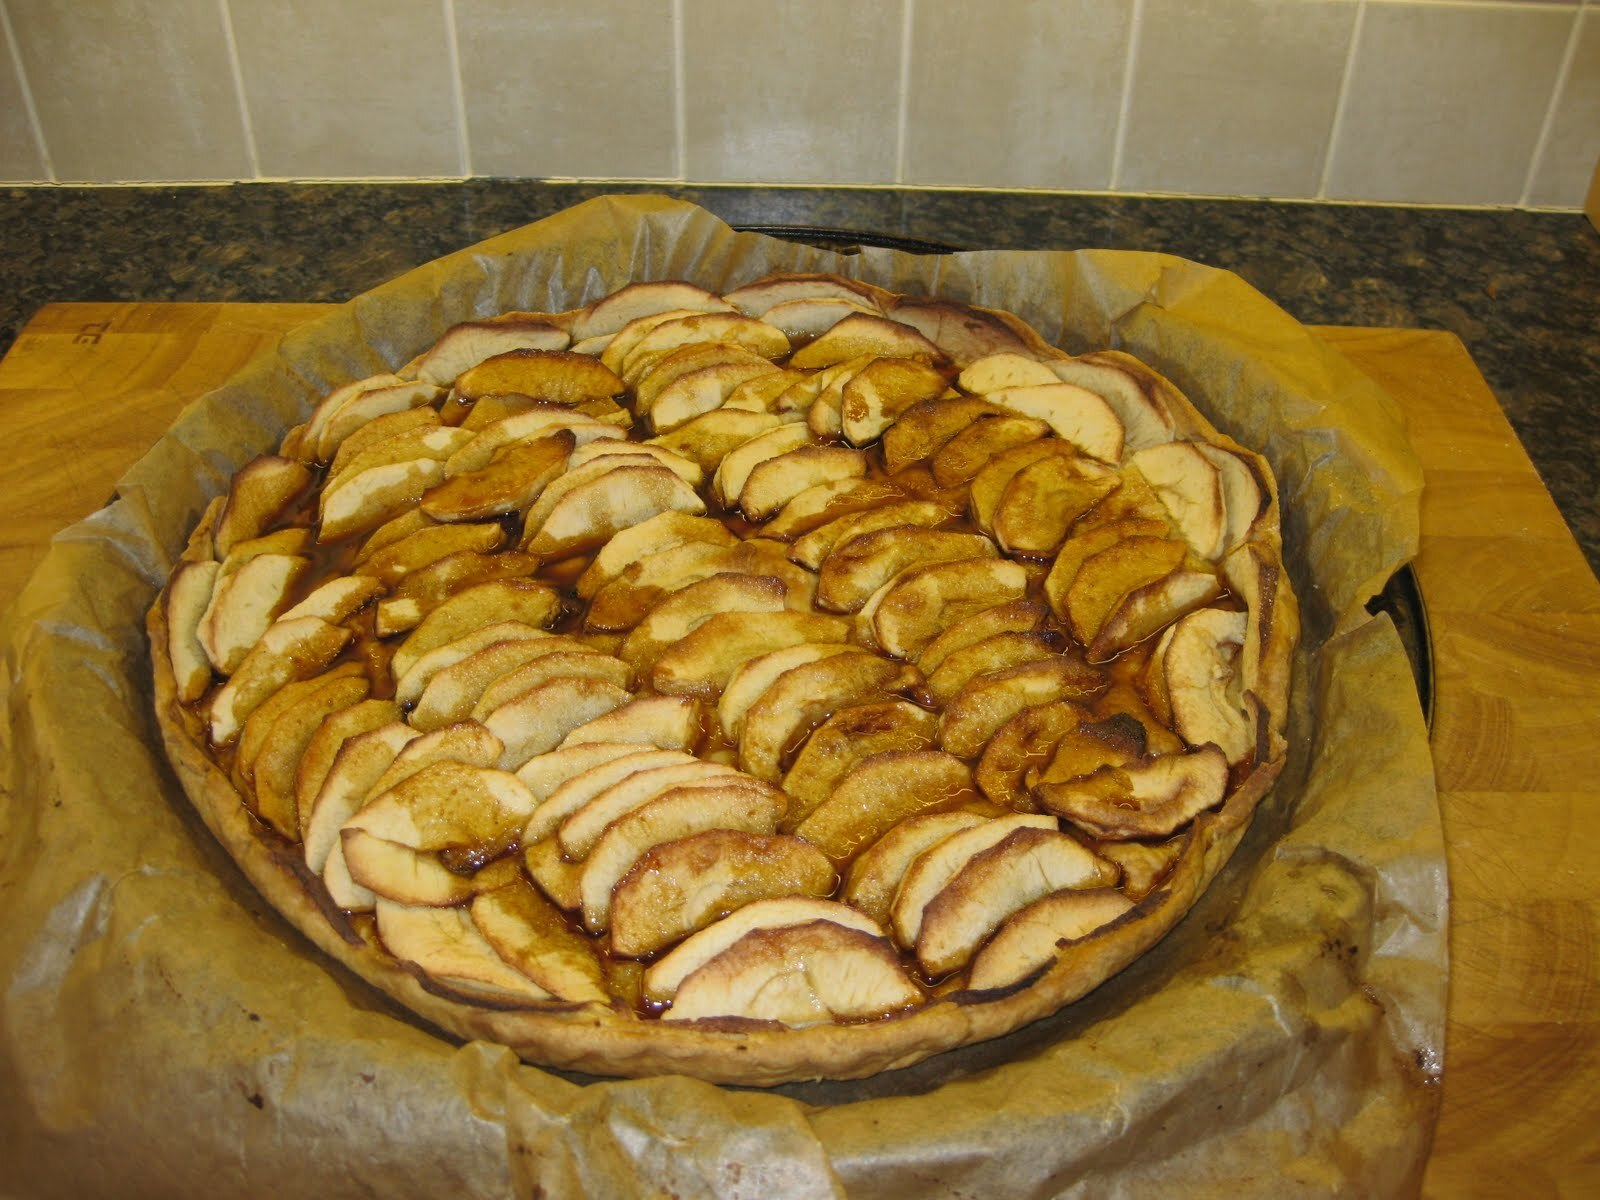 New Year Baking for 6 January (Le Jour des Rois)